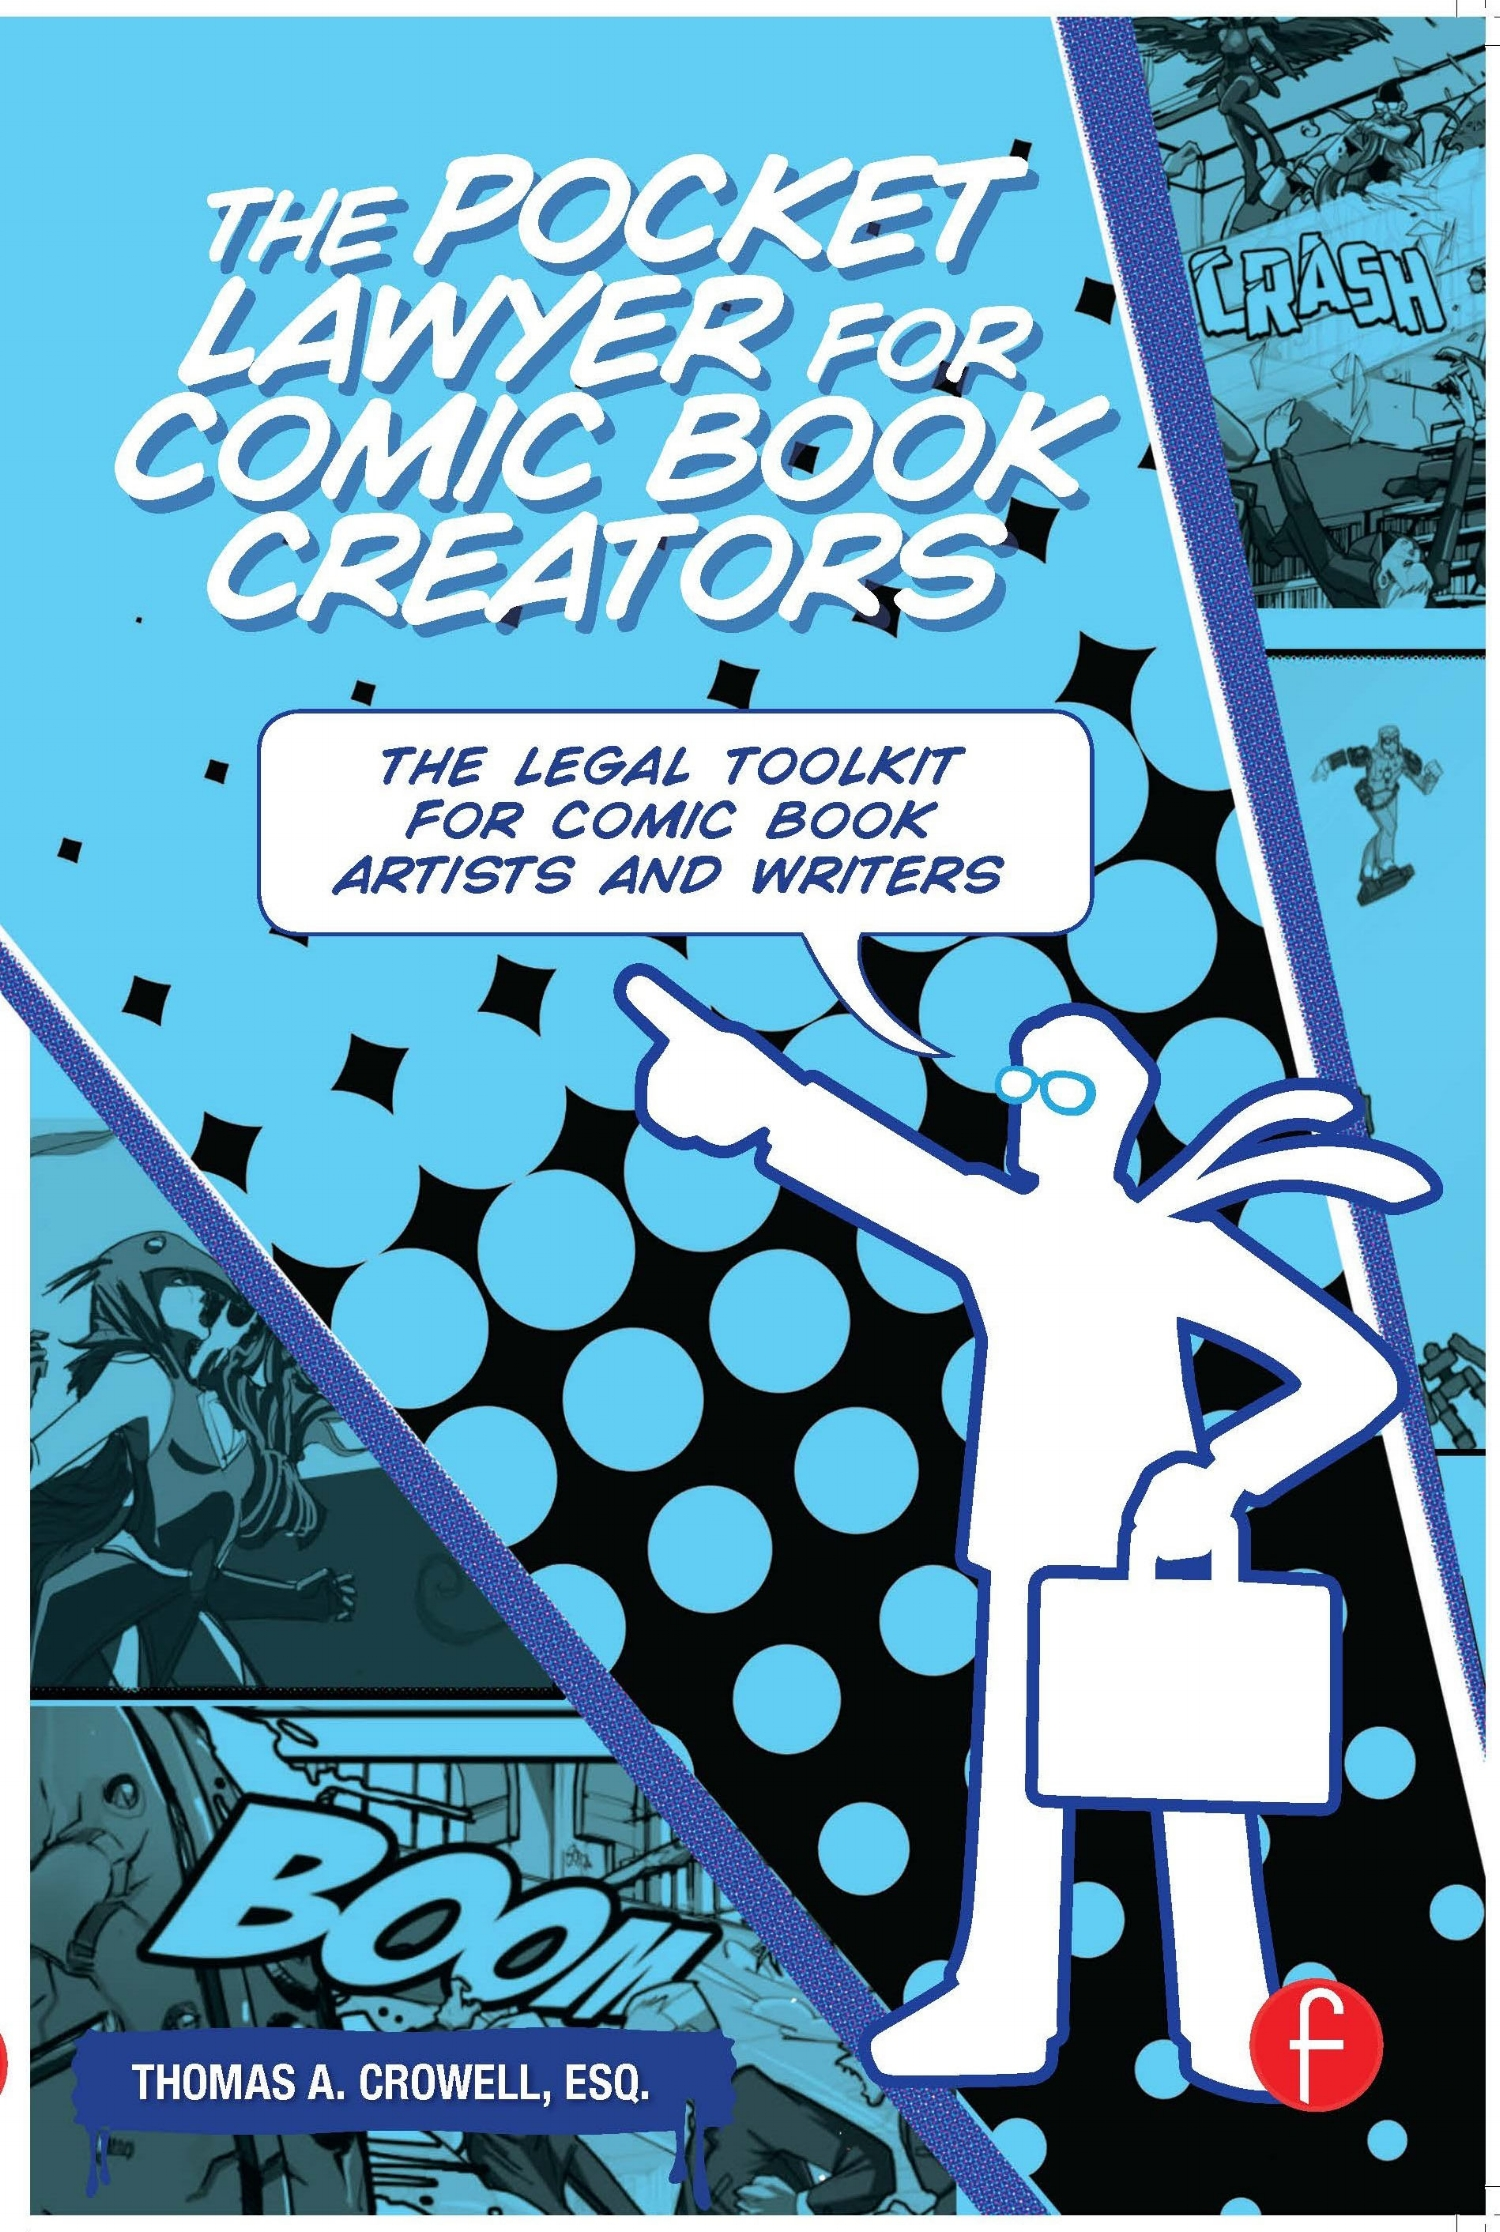 The Pocket Lawyer for Comic Book Creators - The Pocket Lawyer for Comic Book Creatorsis the FIRST dedicated legal guide to the comic book industry. It is designed to help emerging artists and veteran professionals in the comic book industry build a solid foundation of business and communication practices that they need to thrive in today's ever-changing, uncertain world of indie comics.Readers will learn to protect their copyrights, negotiate publishing deals, hire artists so everyone wins, and learn the ins and outs of key contracts with this helpful resource.